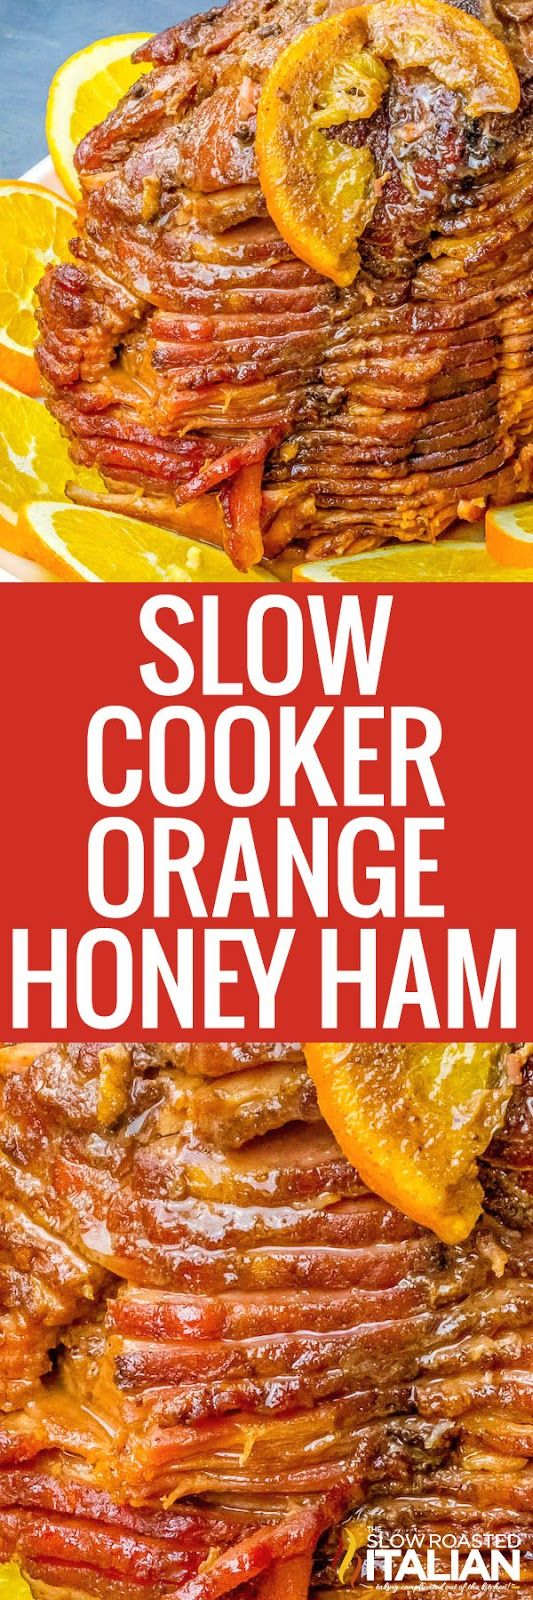 Slow Cooker Orange Glazed Ham is a delicious, easy, and completely crave-able recipe that is the hit at any holiday dinner! It is so easy it just about cooks itself.